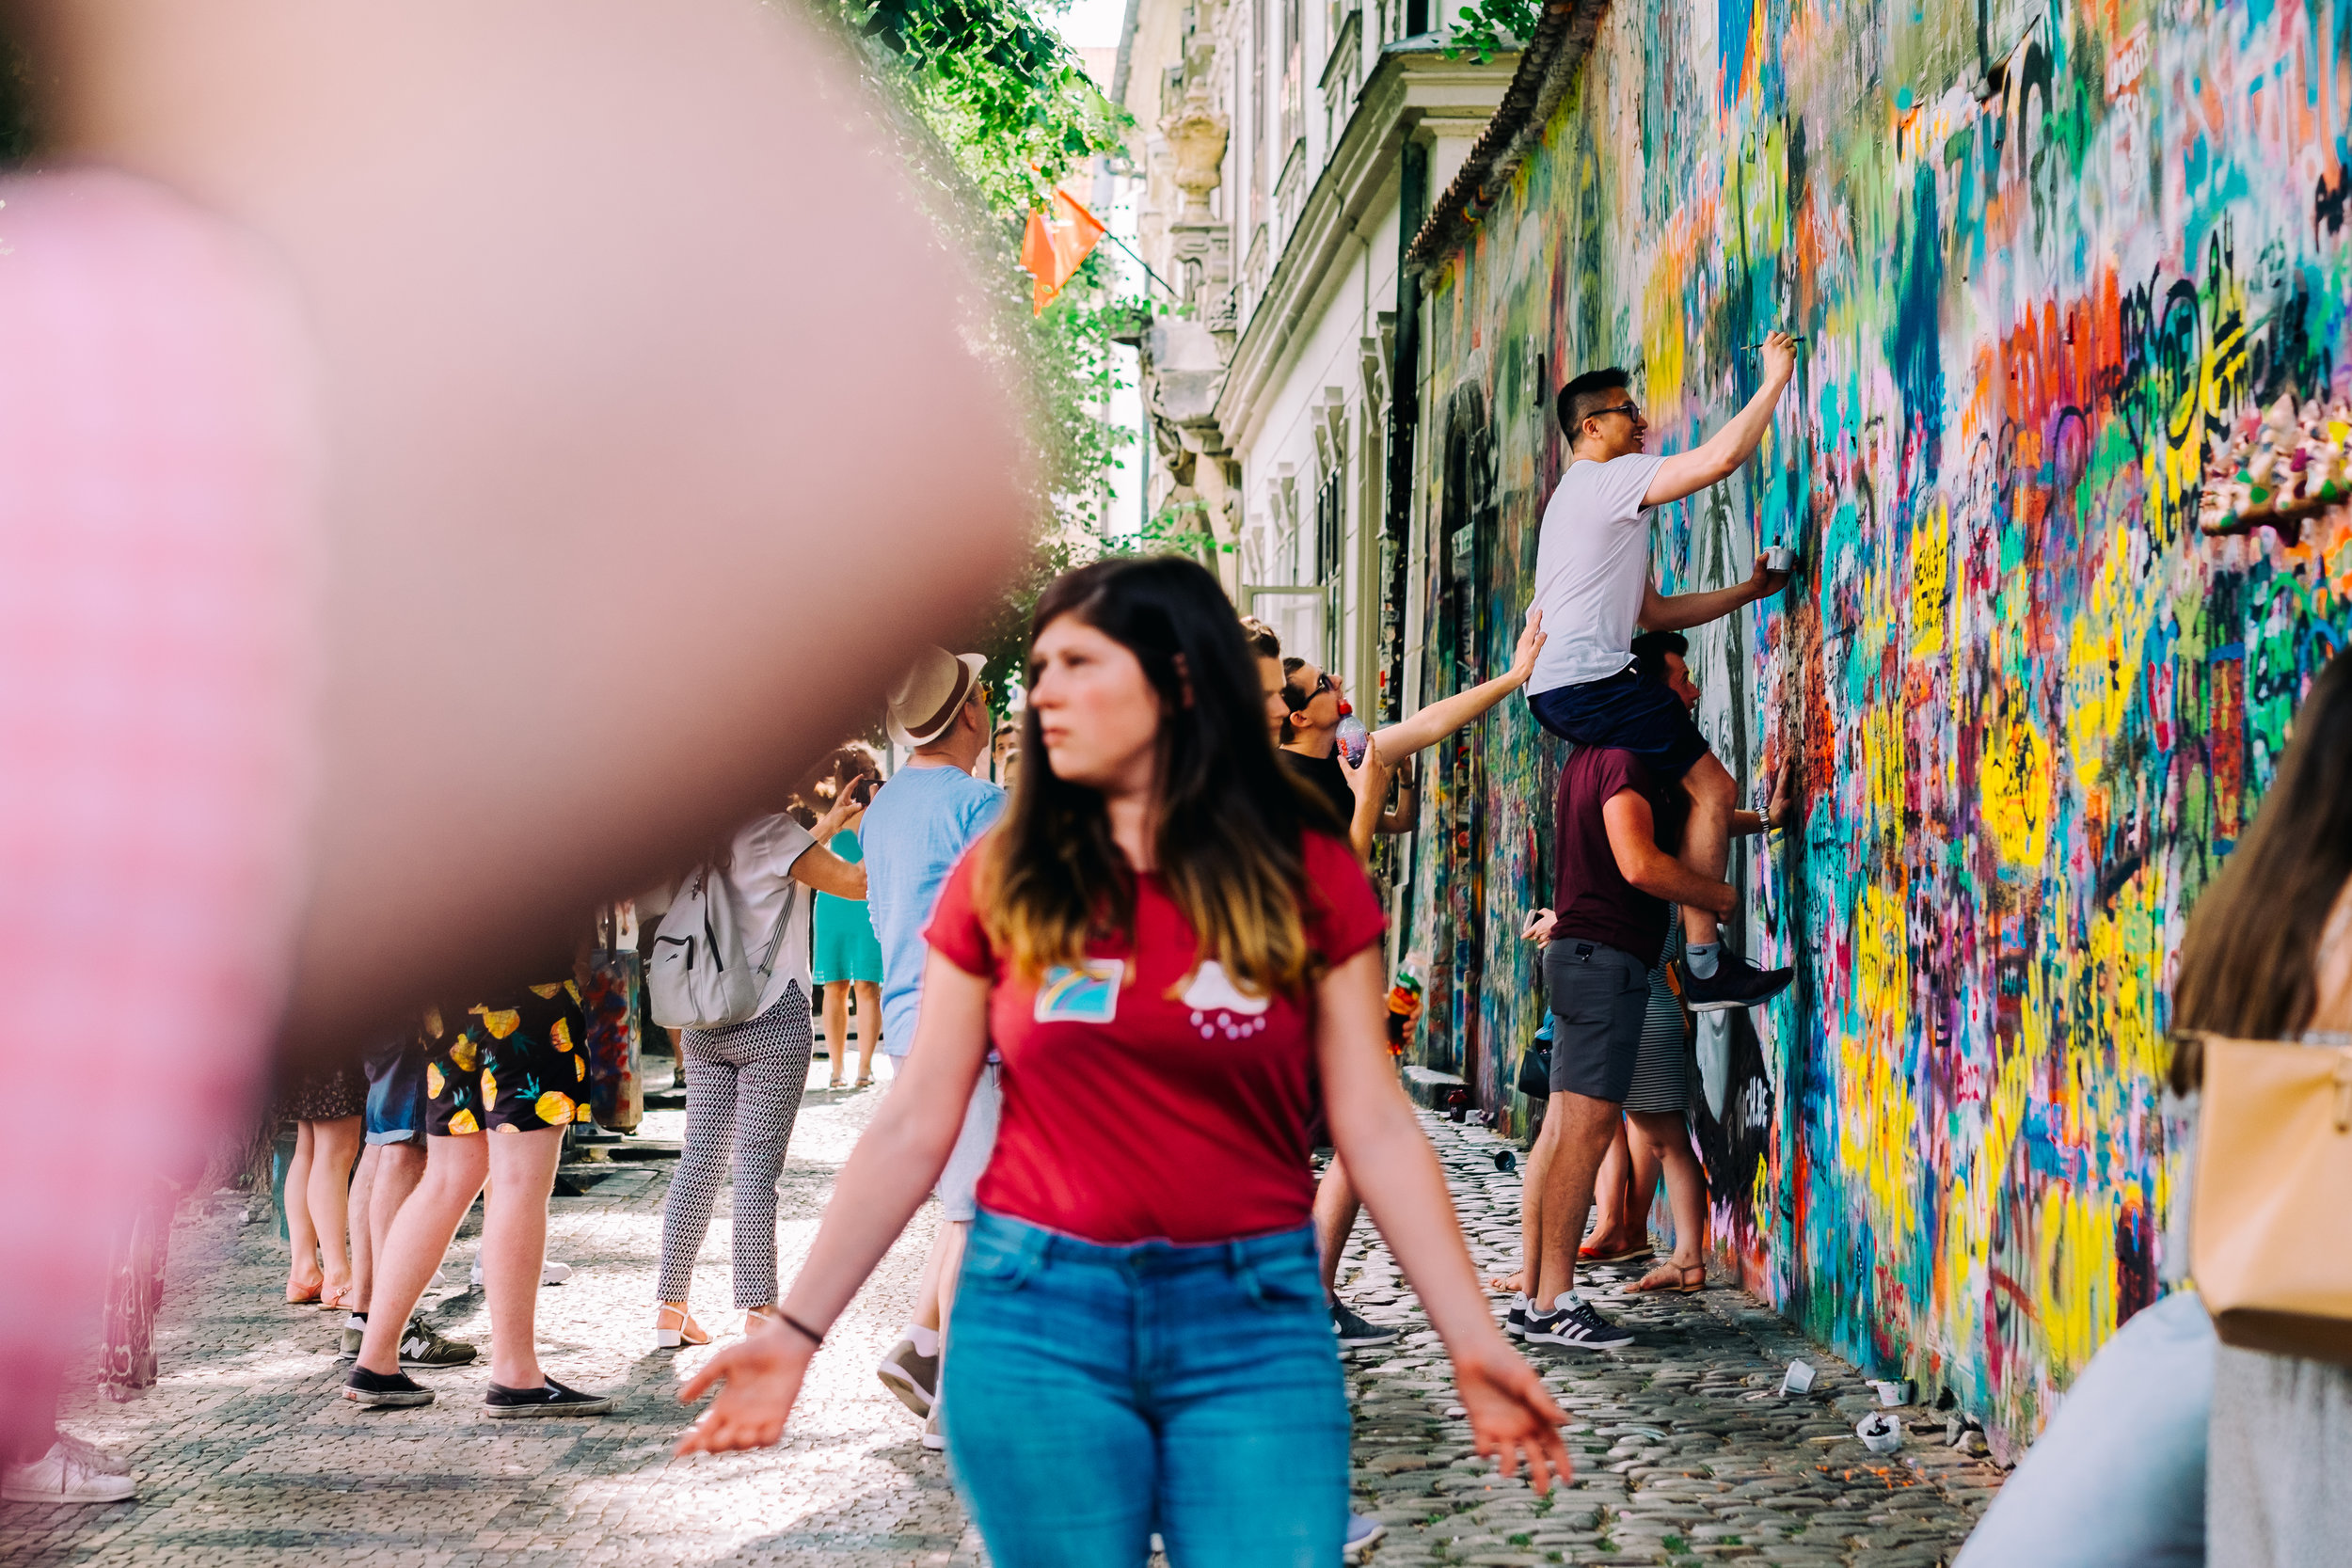 The intent of this image was to show the chaos of the John Lennon Wall in Prague, but also bring attention to the men in the back. But creating a foreground with the man's elbow, and a mid-ground with the woman in read, The Eye is slowly drawn to the men at the wall while giving the viewer a sense of crowding.